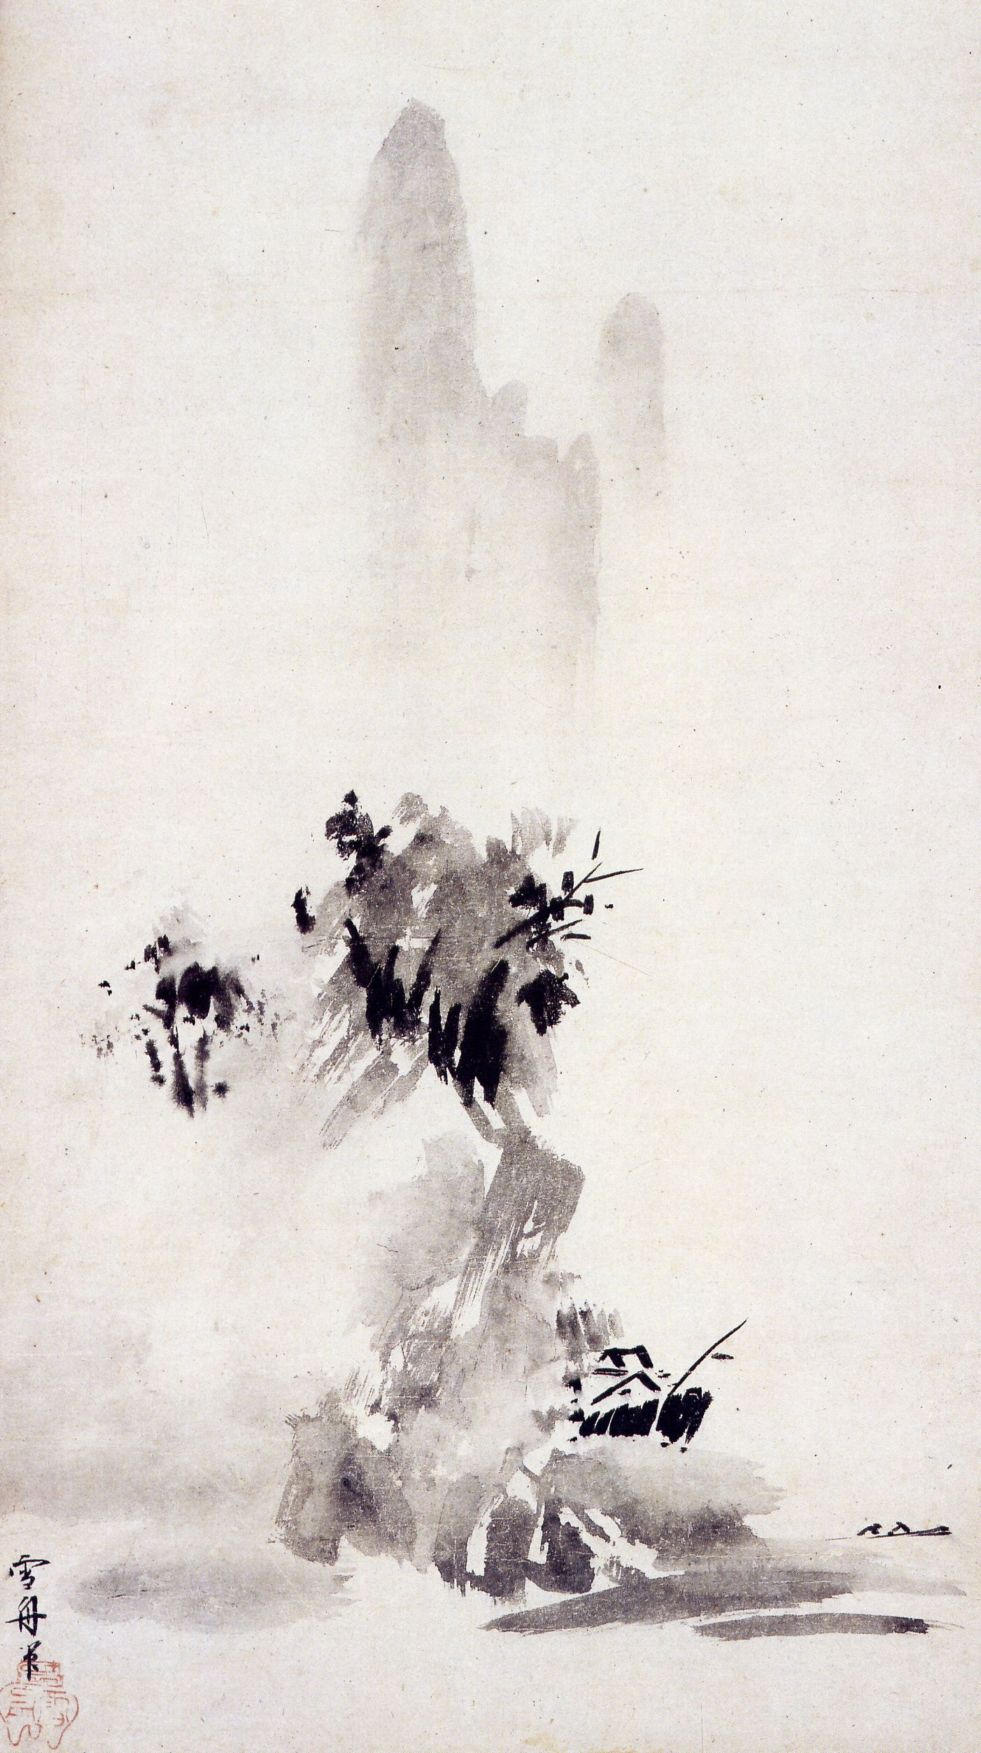 paintings of toyo sesshu The japanese painter and zen priest toyo sesshu (1420-1506) is generally regarded as japan's greatest painter his zen-inspired paintings are credited with establishing a truly japanese style of ink painting which had a great influence on all later japanese painting.